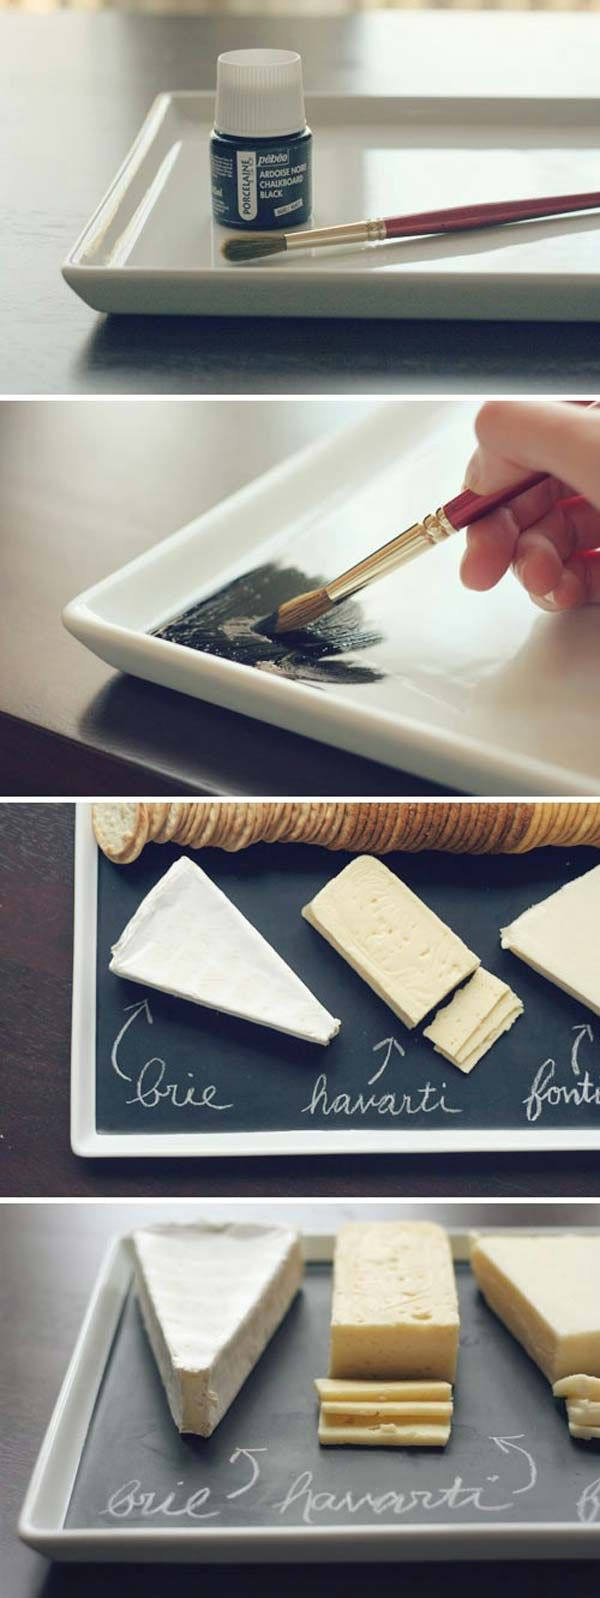 21 Inspiring Ways To Use Chalkboard Paint On a Kitchen 9